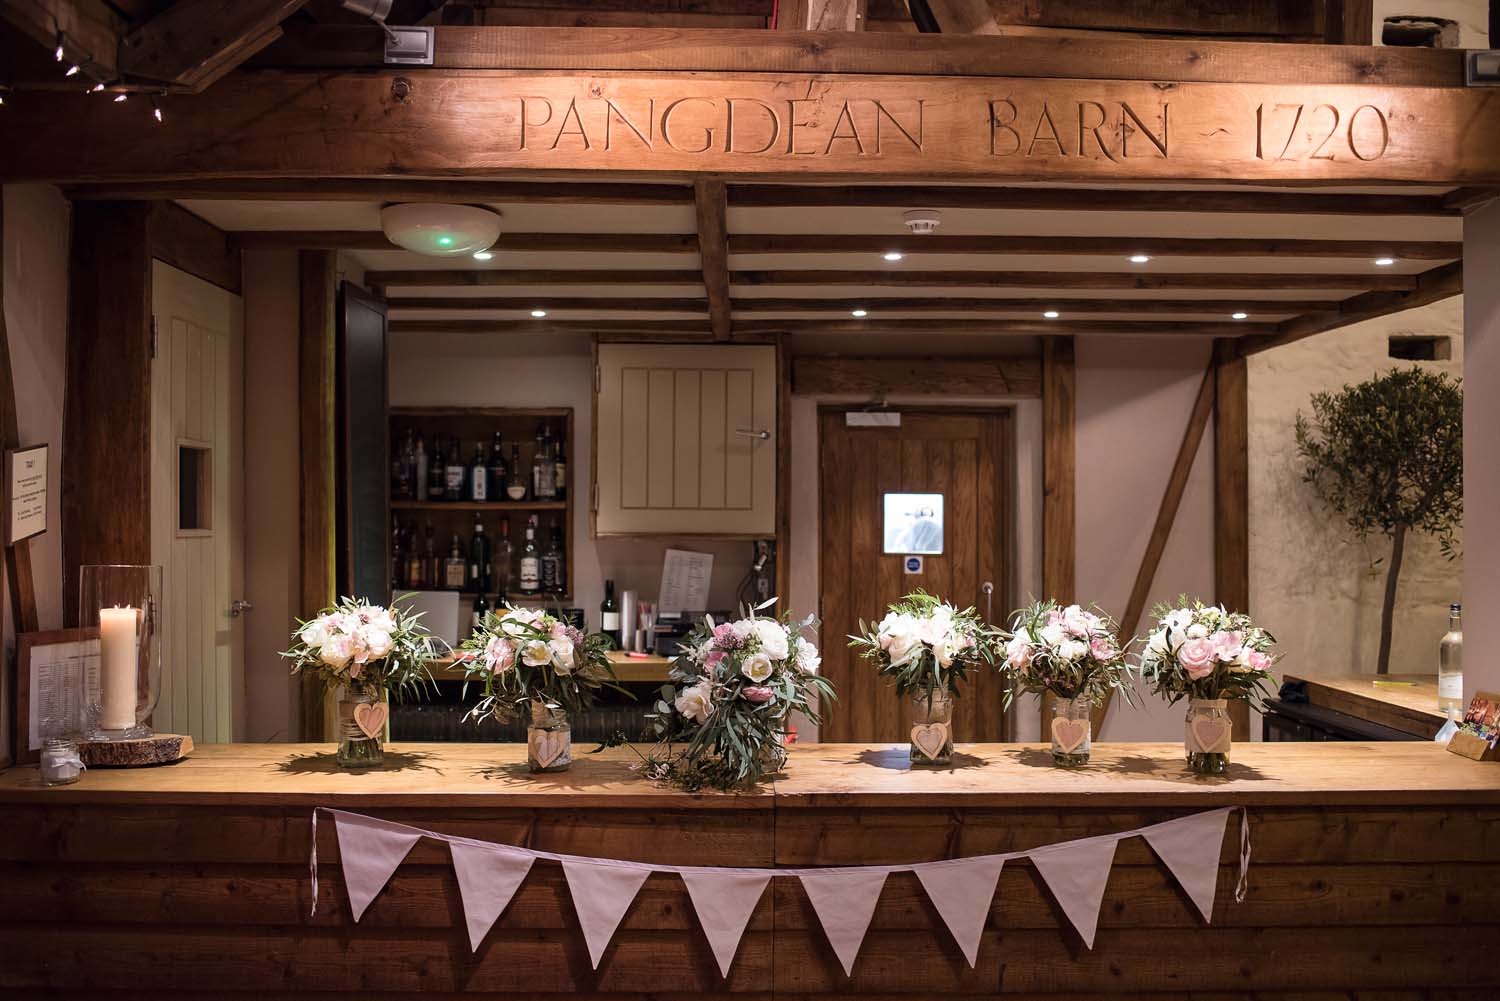 pangdean barn bar flowers